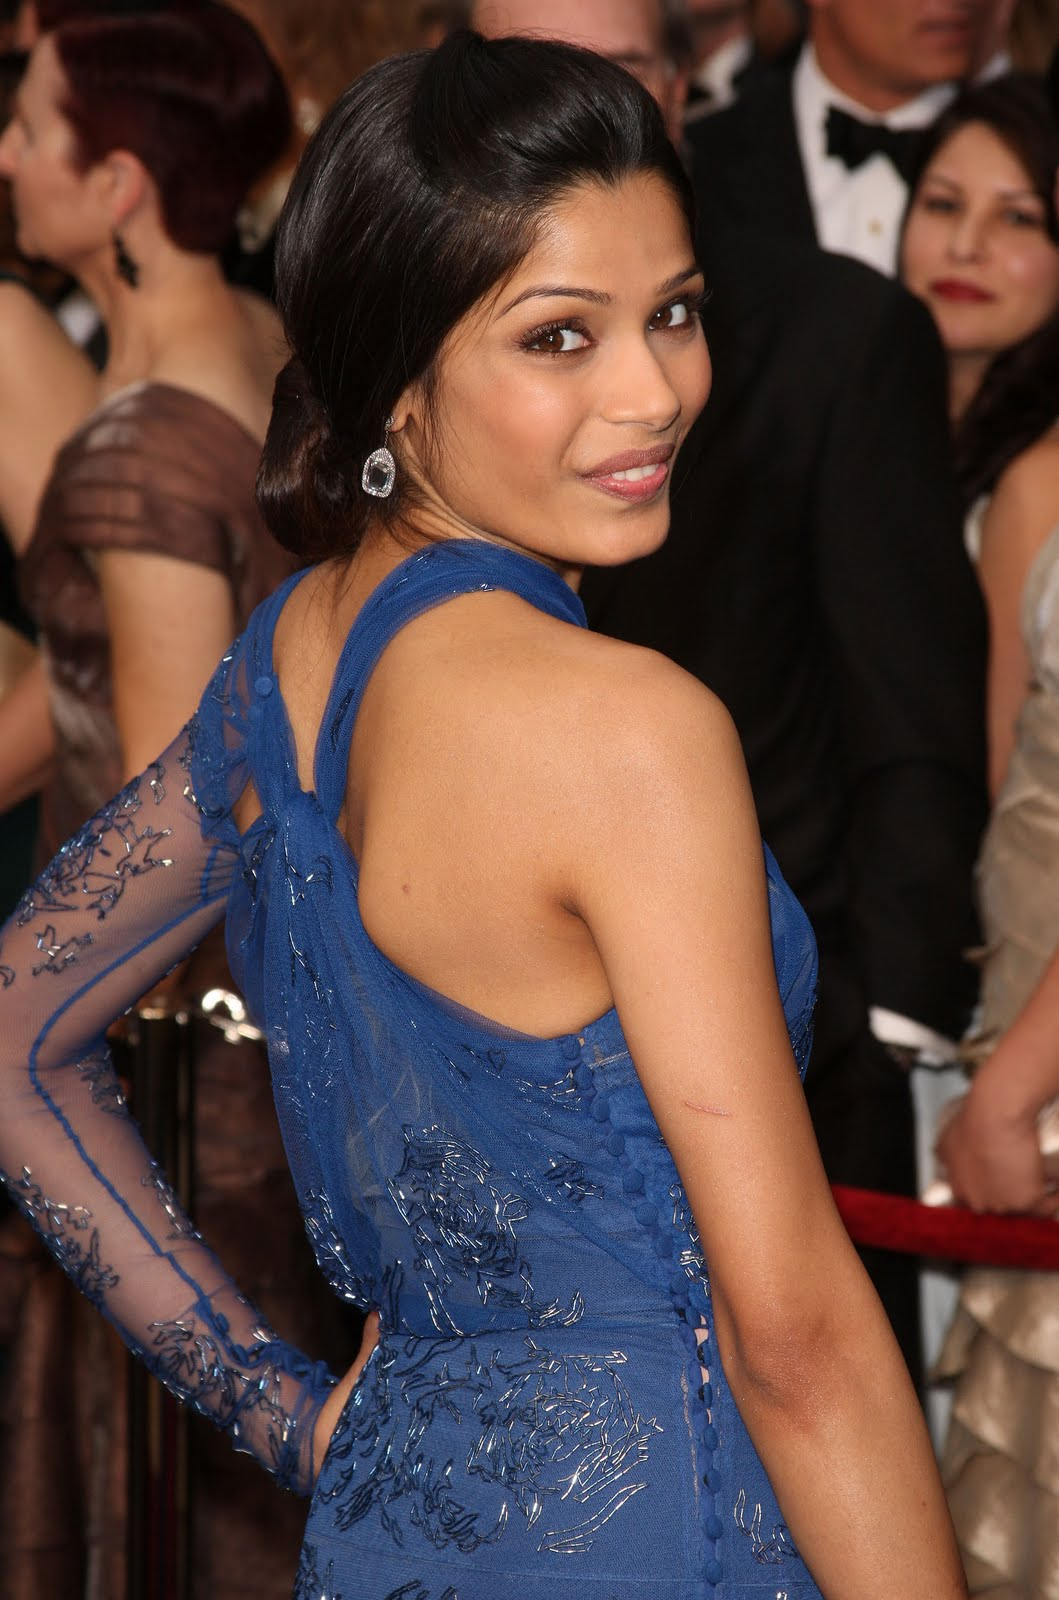 freida pinto sexy candid photo 05